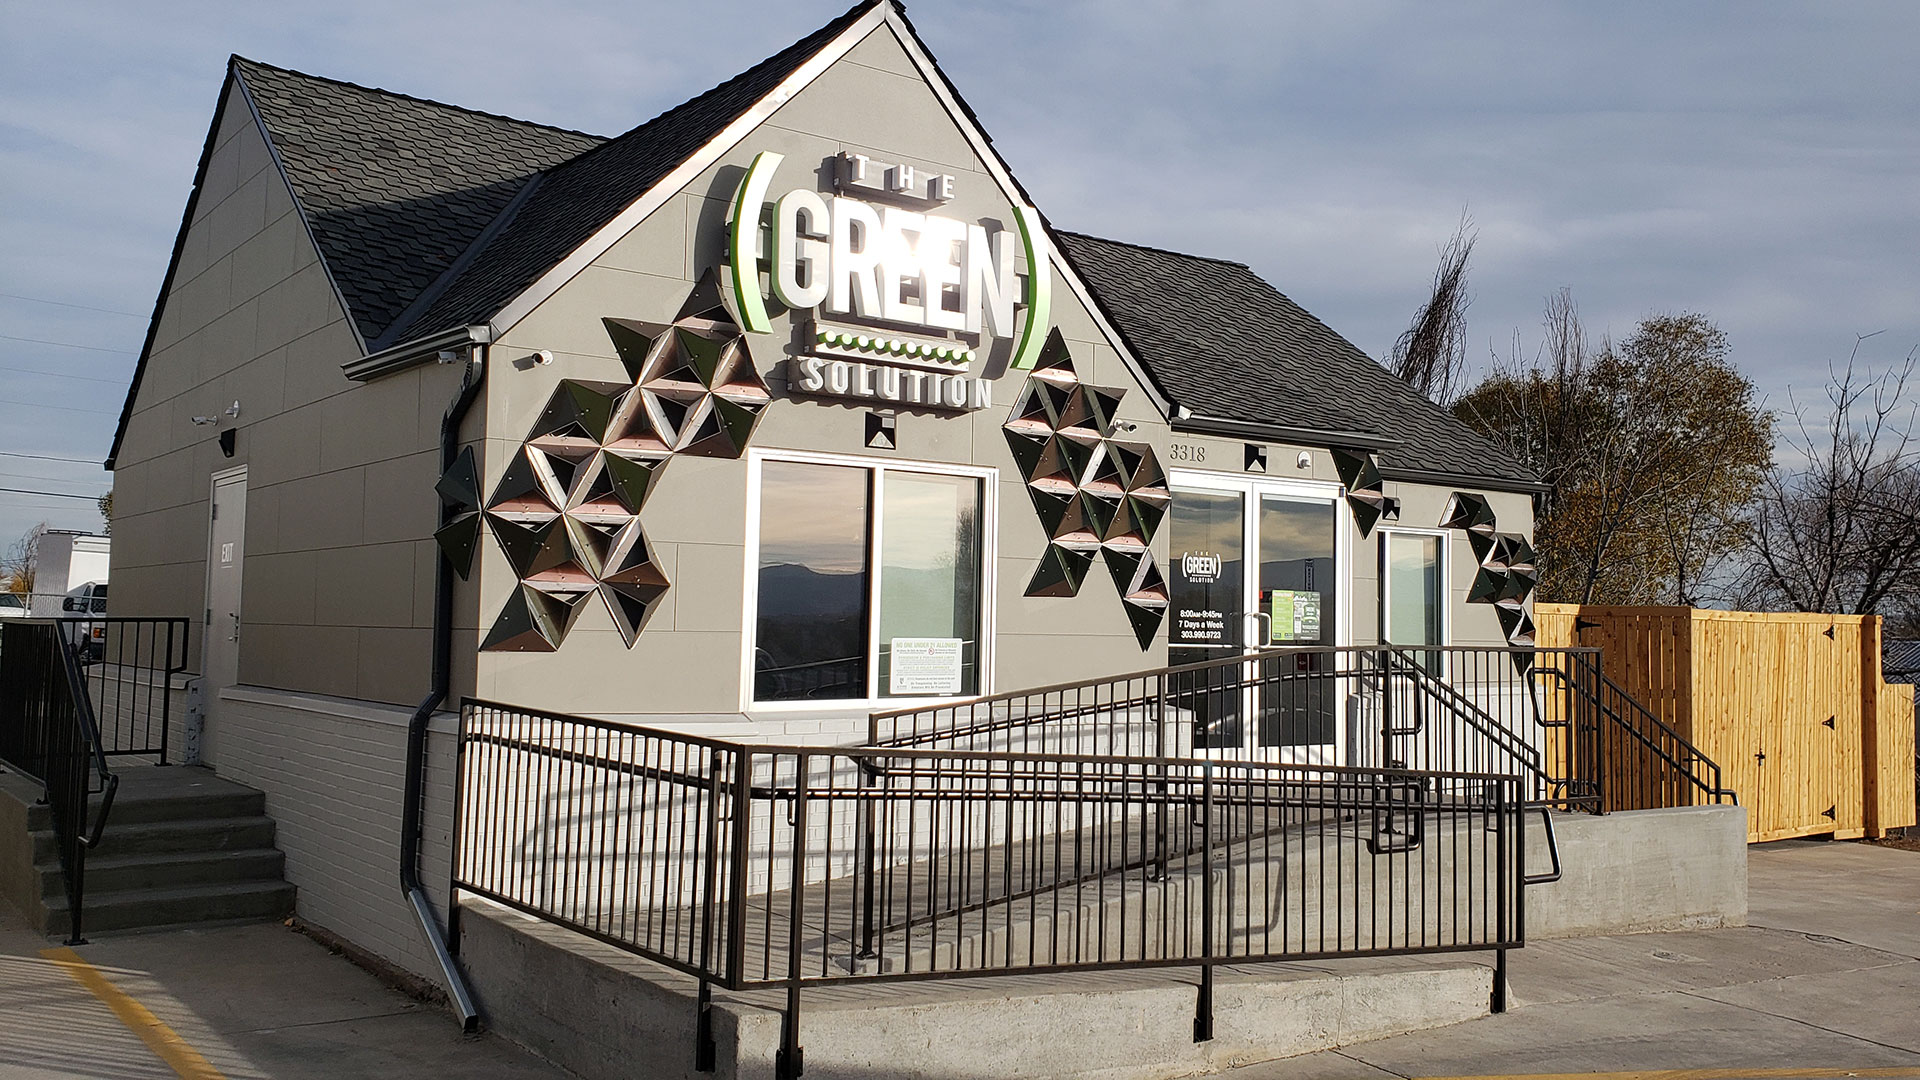 The Green Solution Dispensary